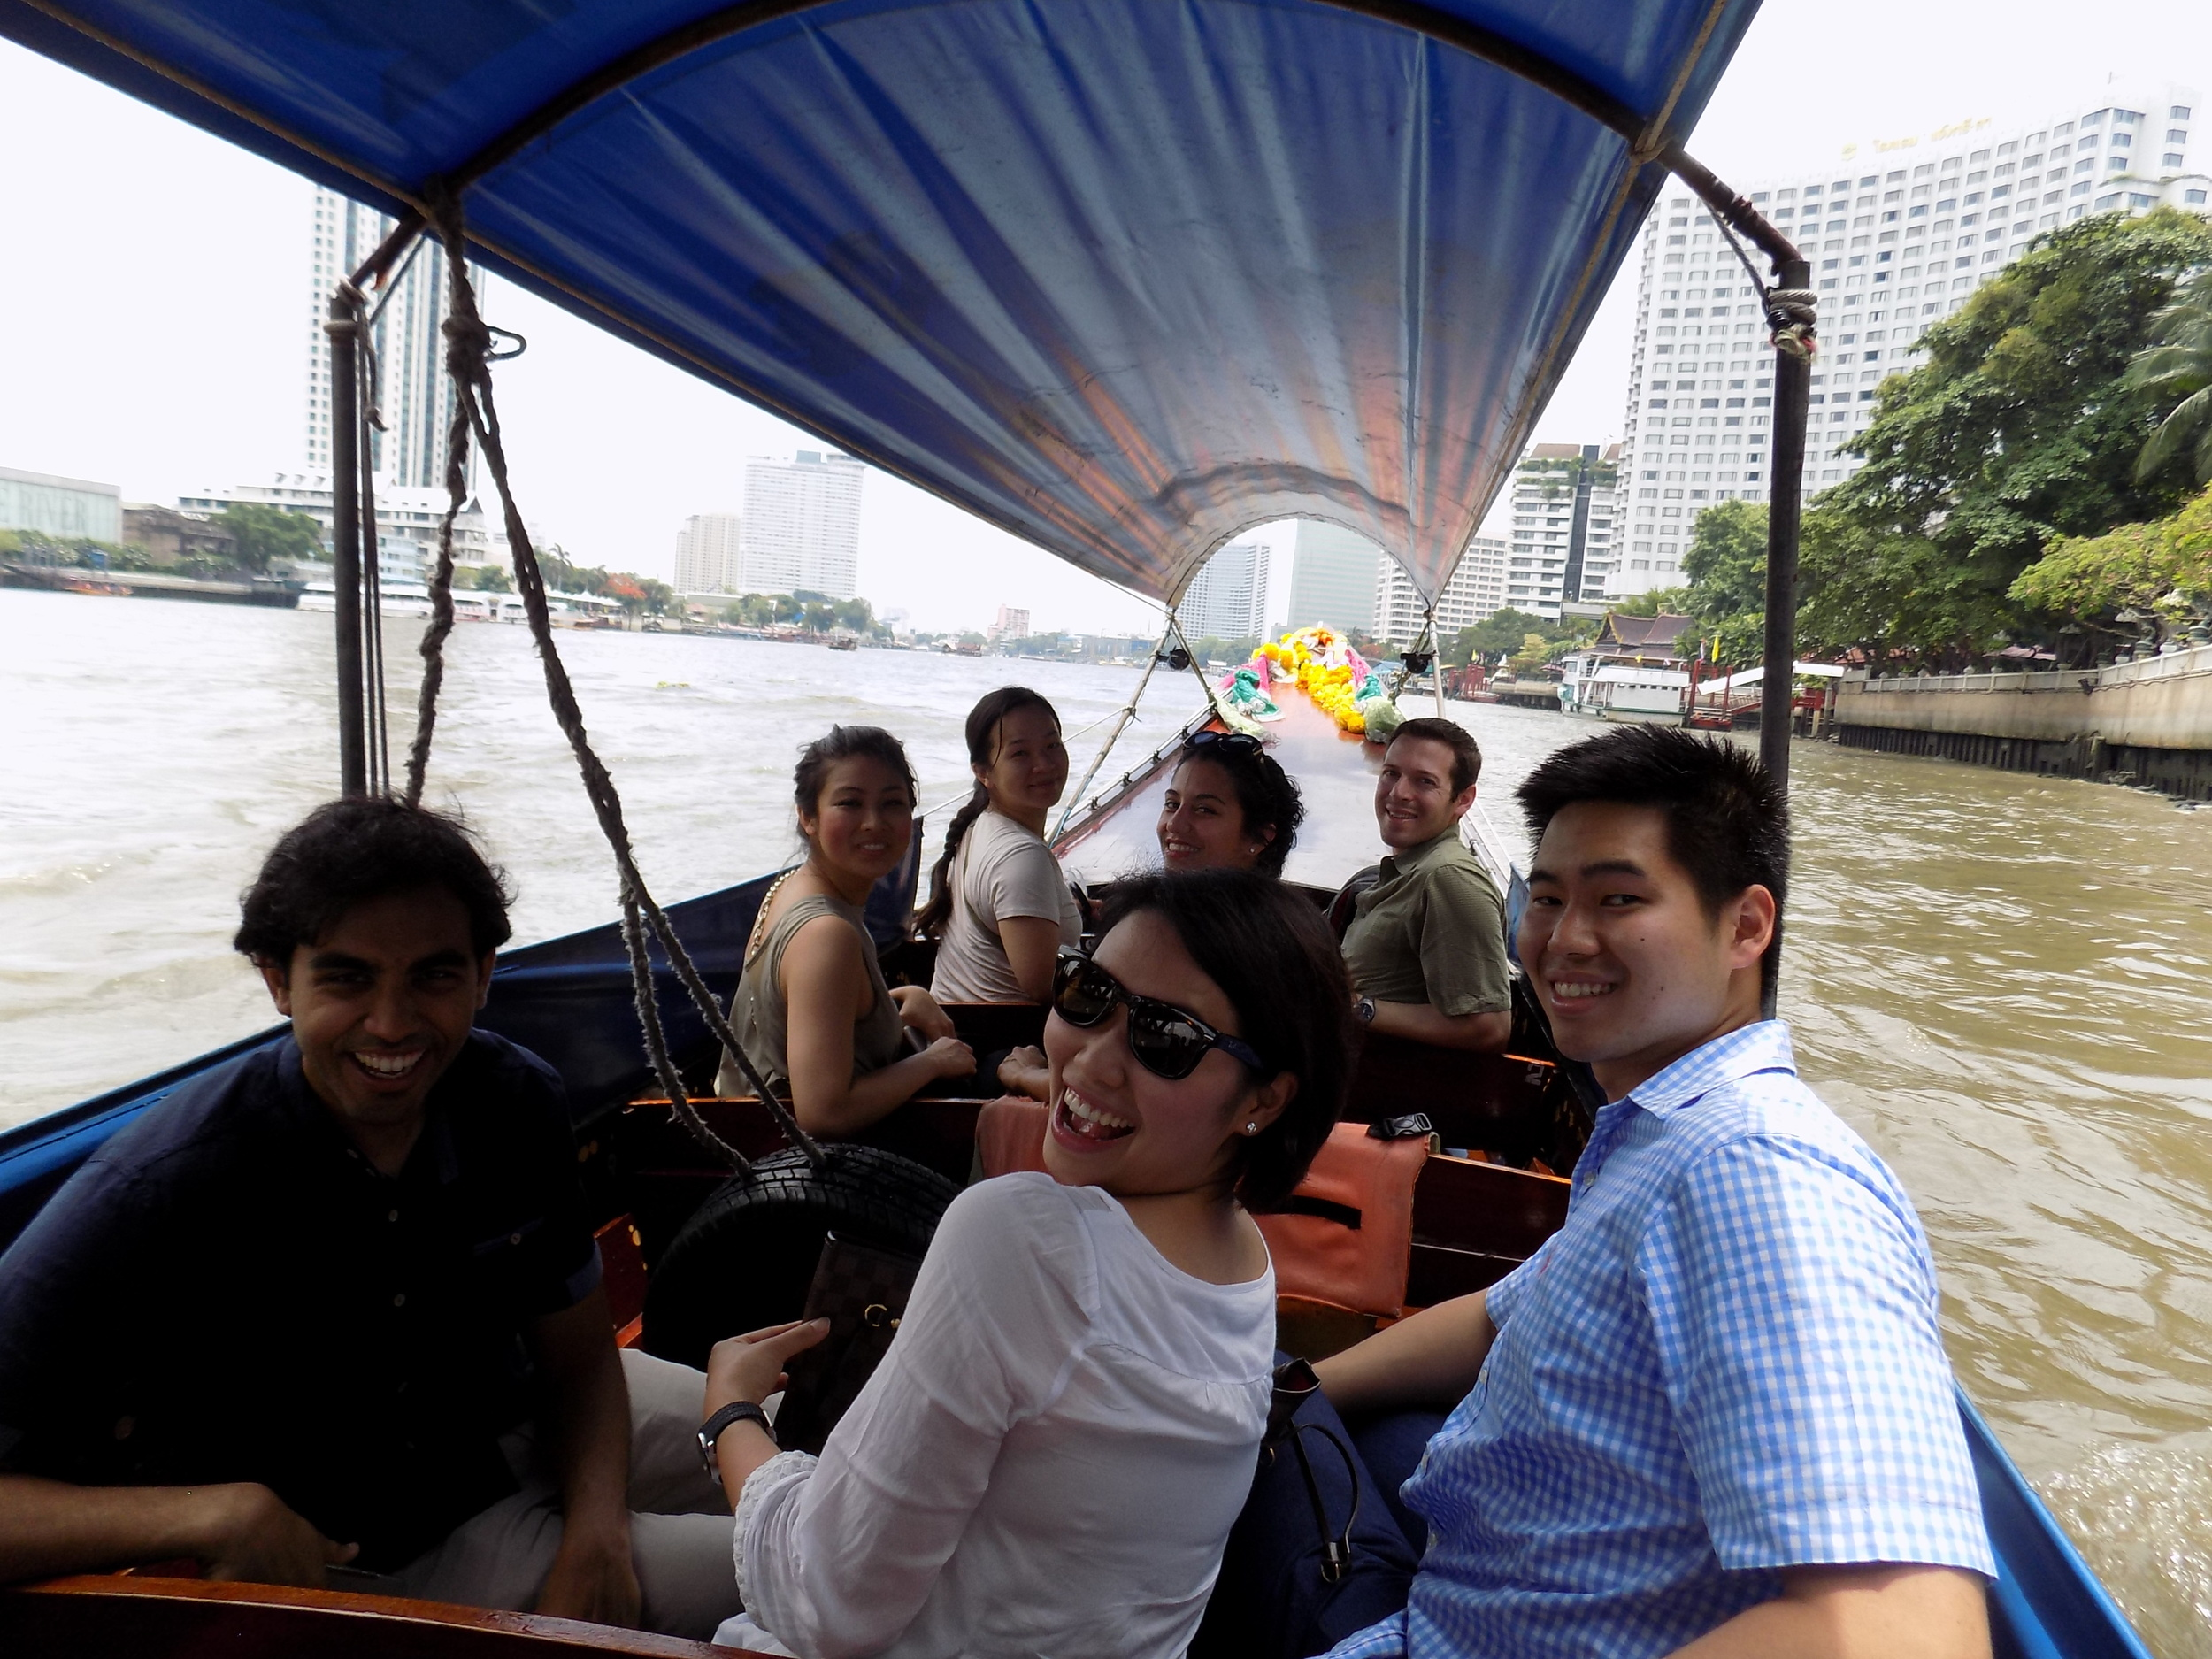 Traveling by boat taxi to the Grand Palace in Bangkok, part 1